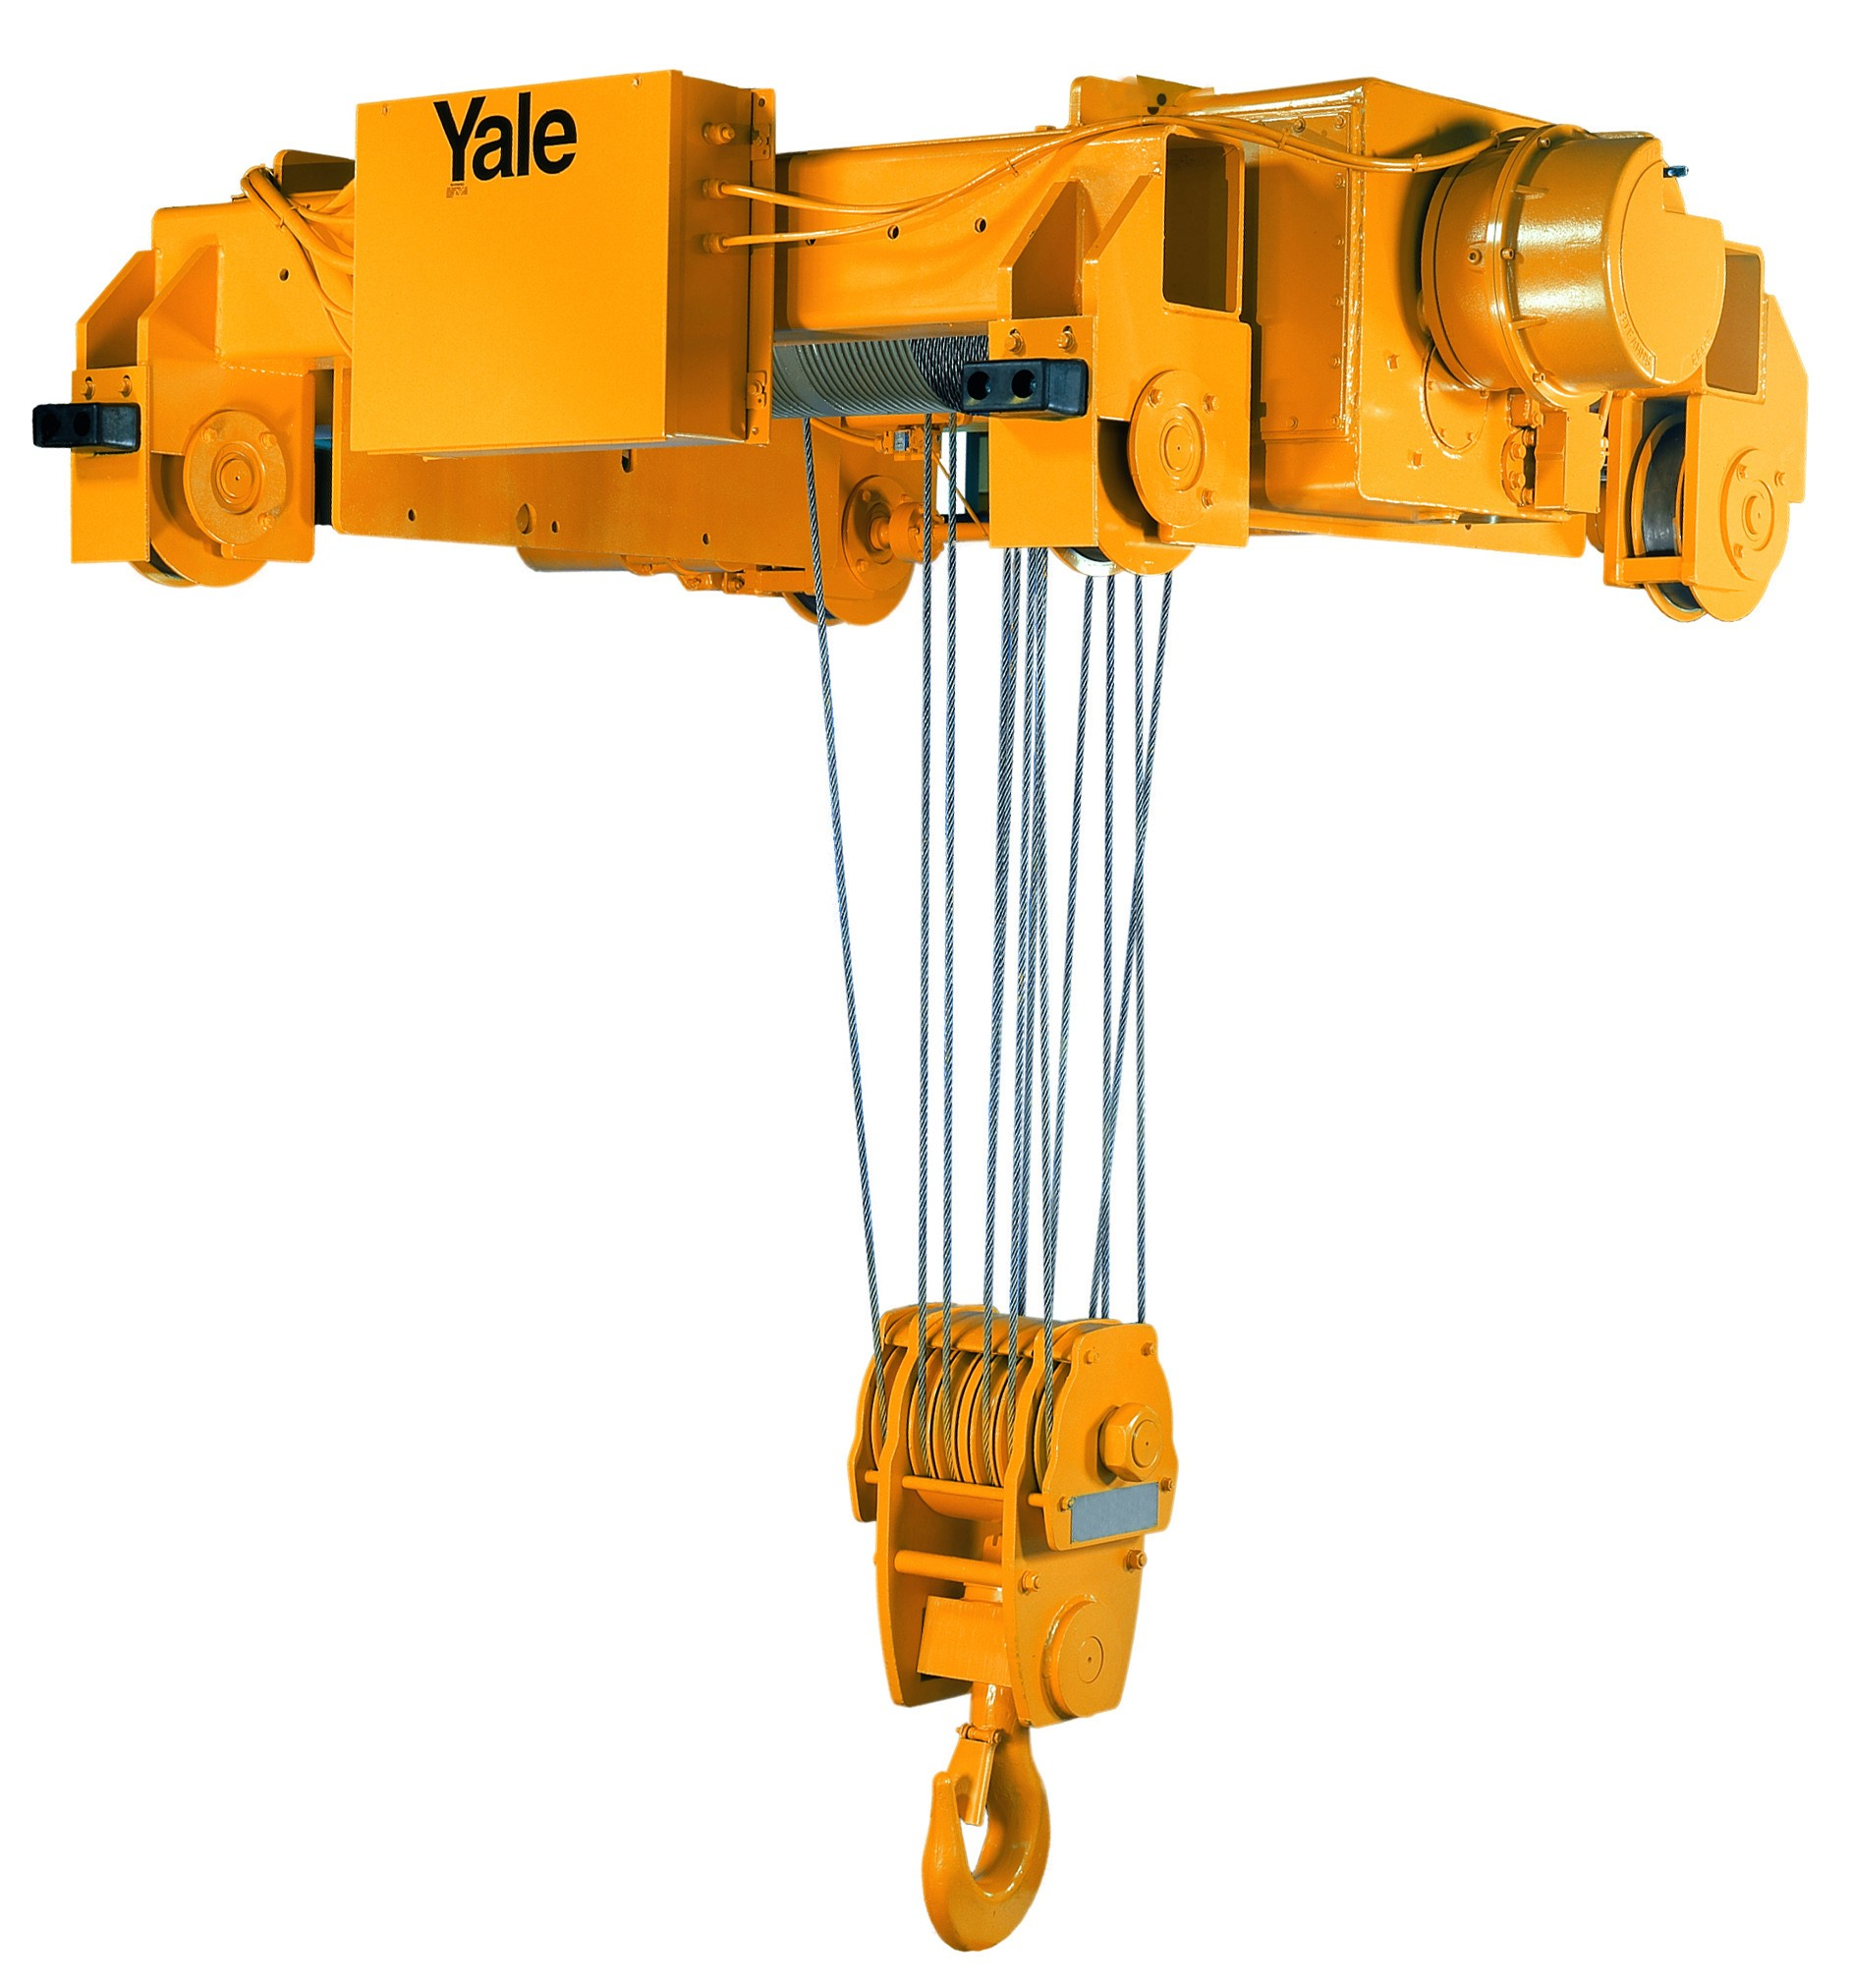 YALE - Cable King 15 Ton Electric Wire Rope Hoist (23fpm & 126' Lift Single Reeve)